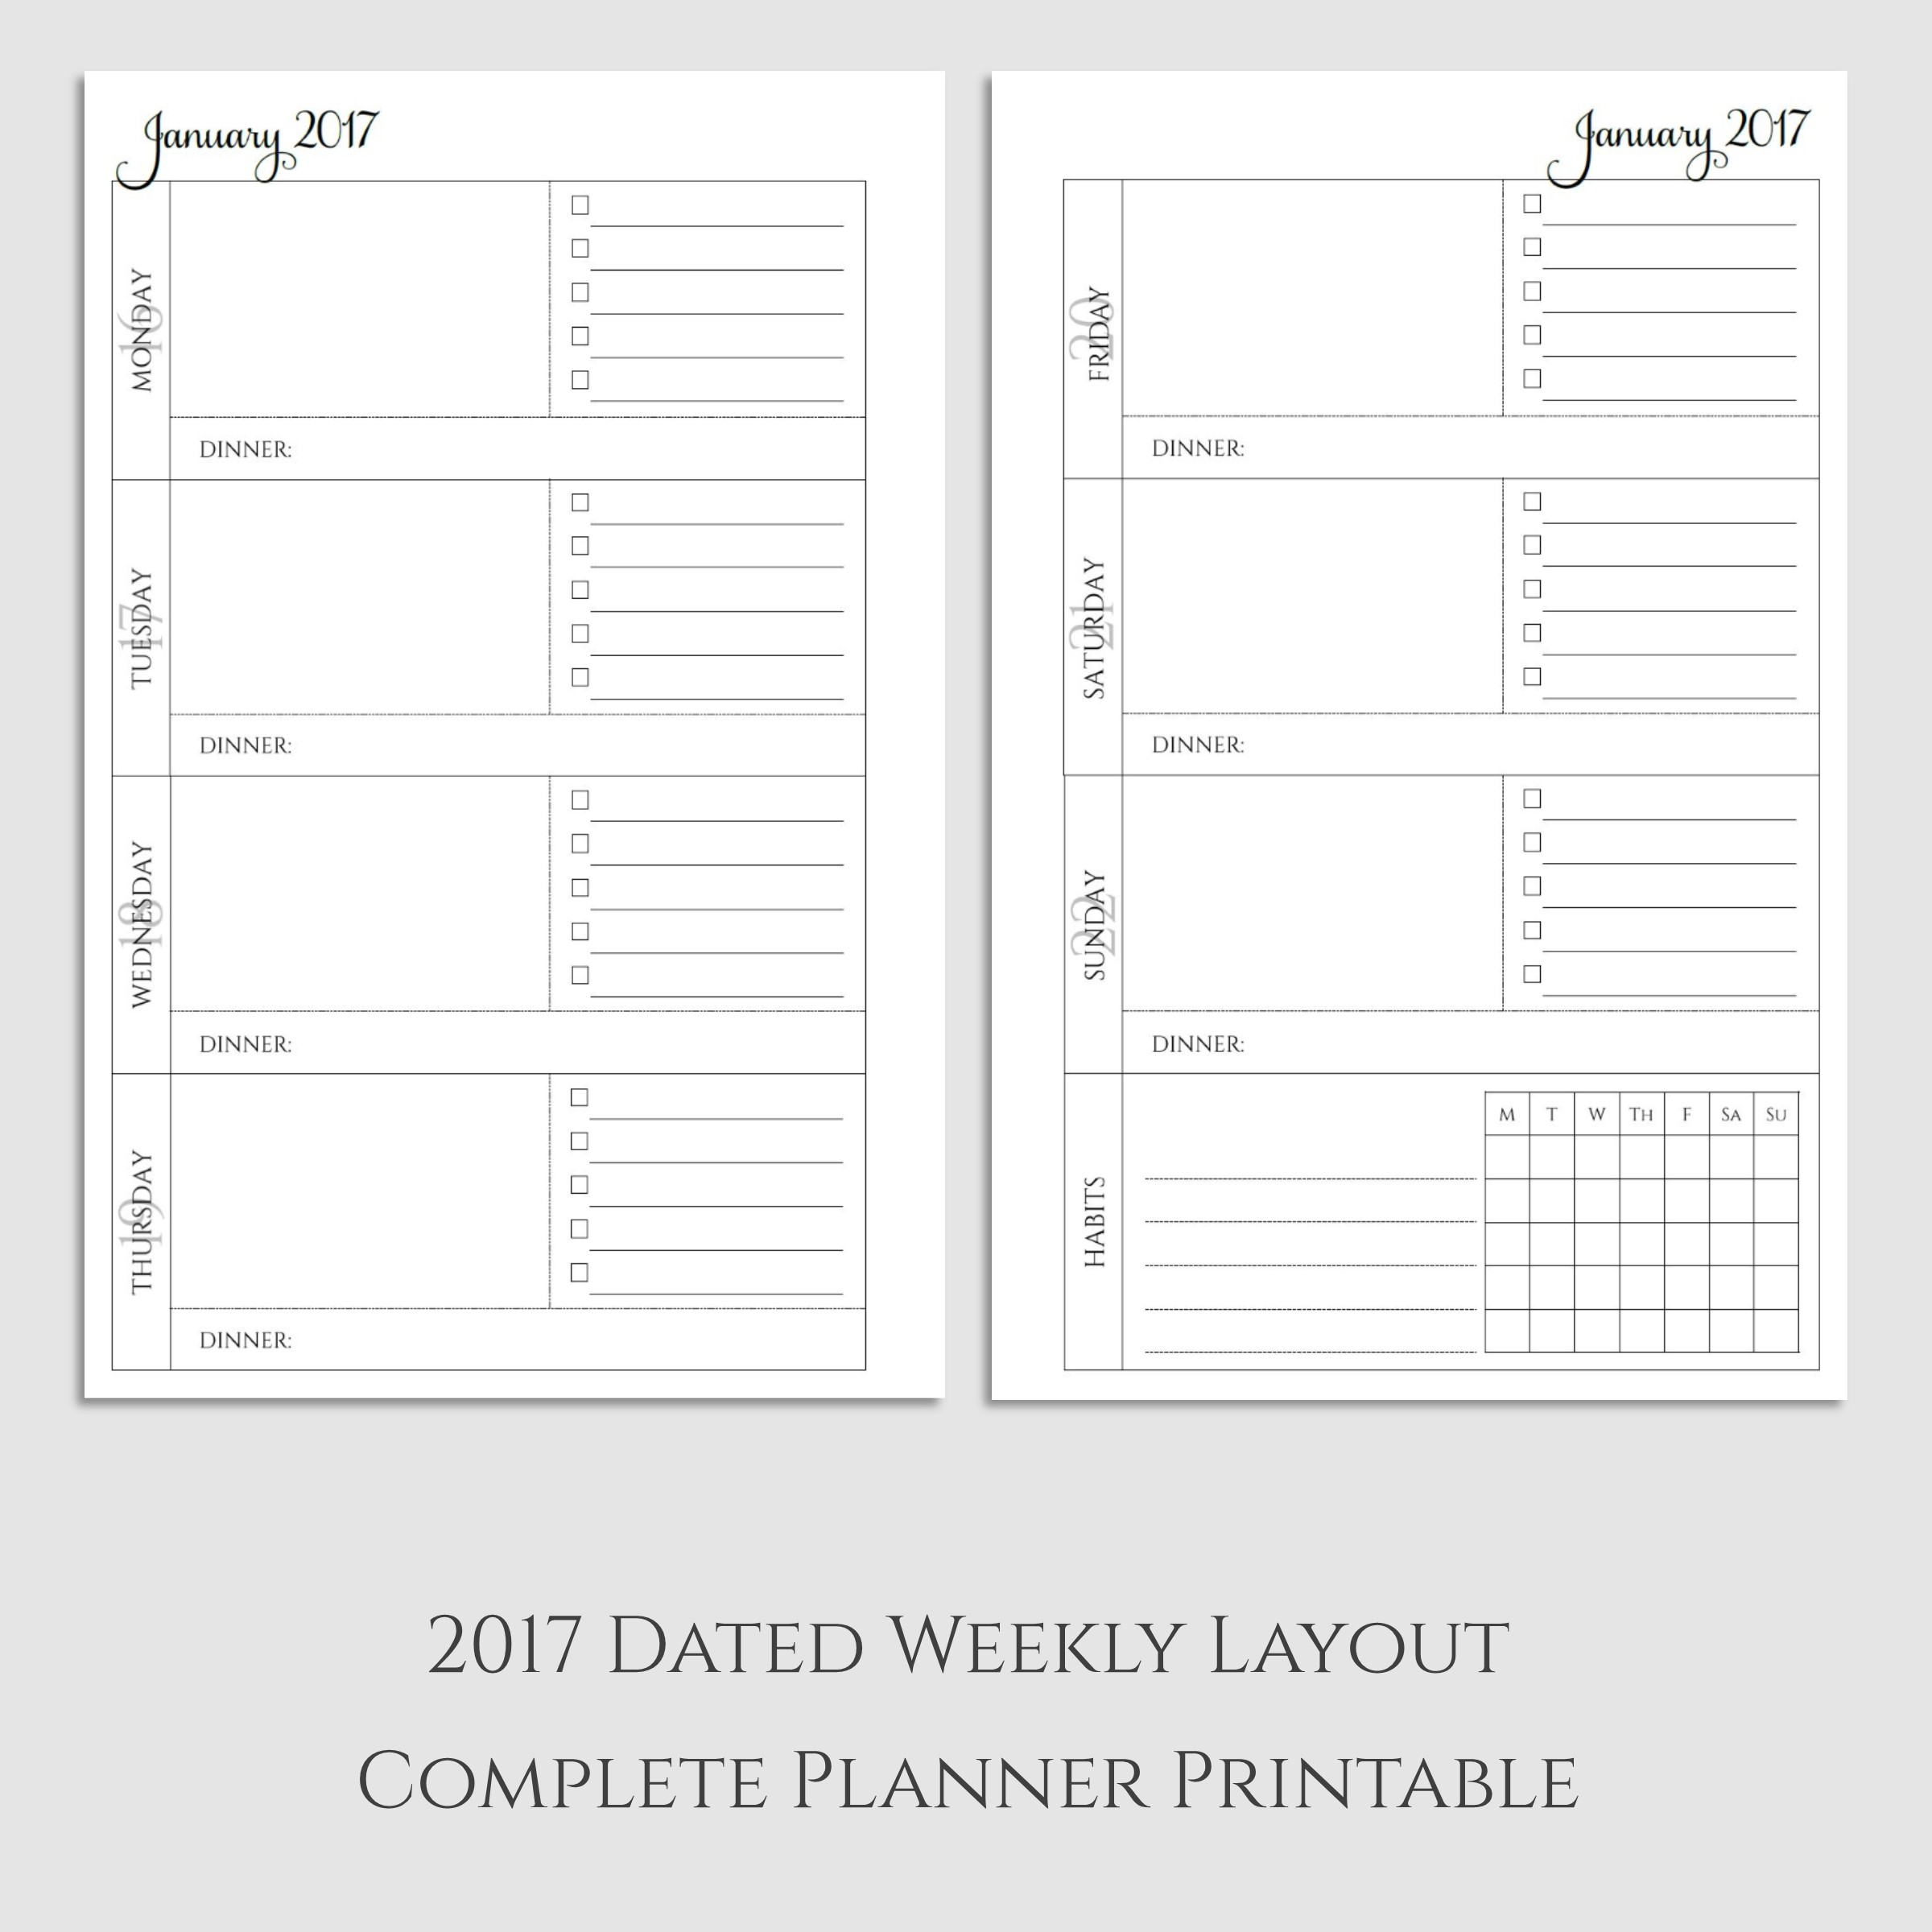 Complete Weekly Planner Printable With Dinner Amp Habit Tracker